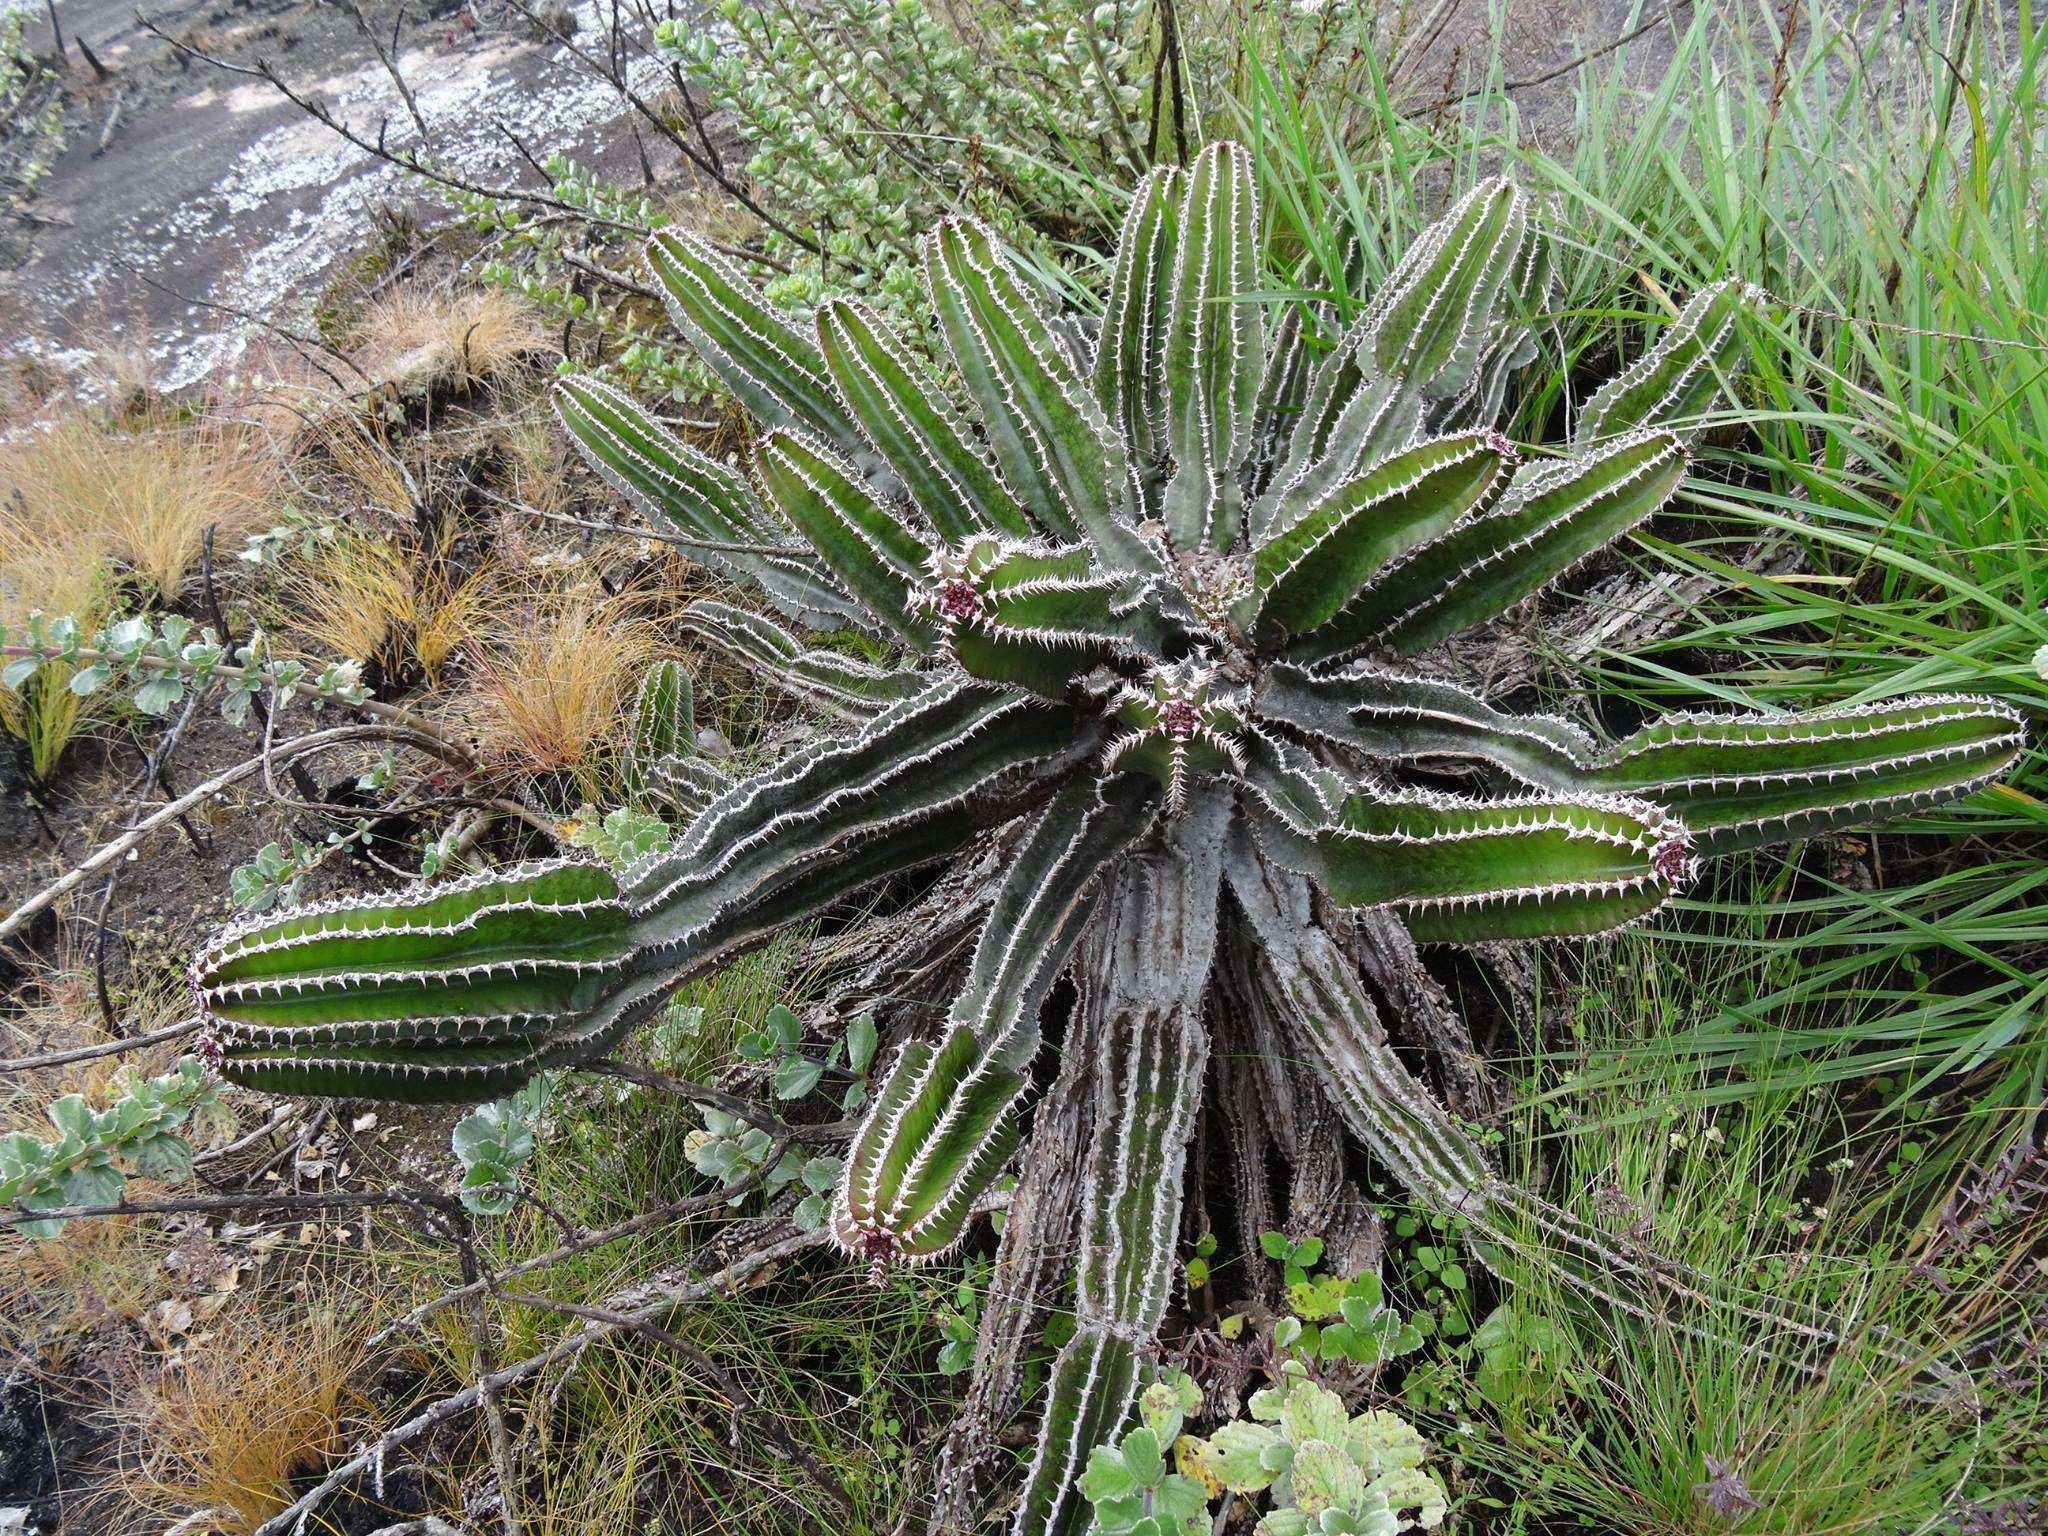 Euphorbia mlanjeana, from Ribaue mountain, in Nampula province, nothern Mozambique